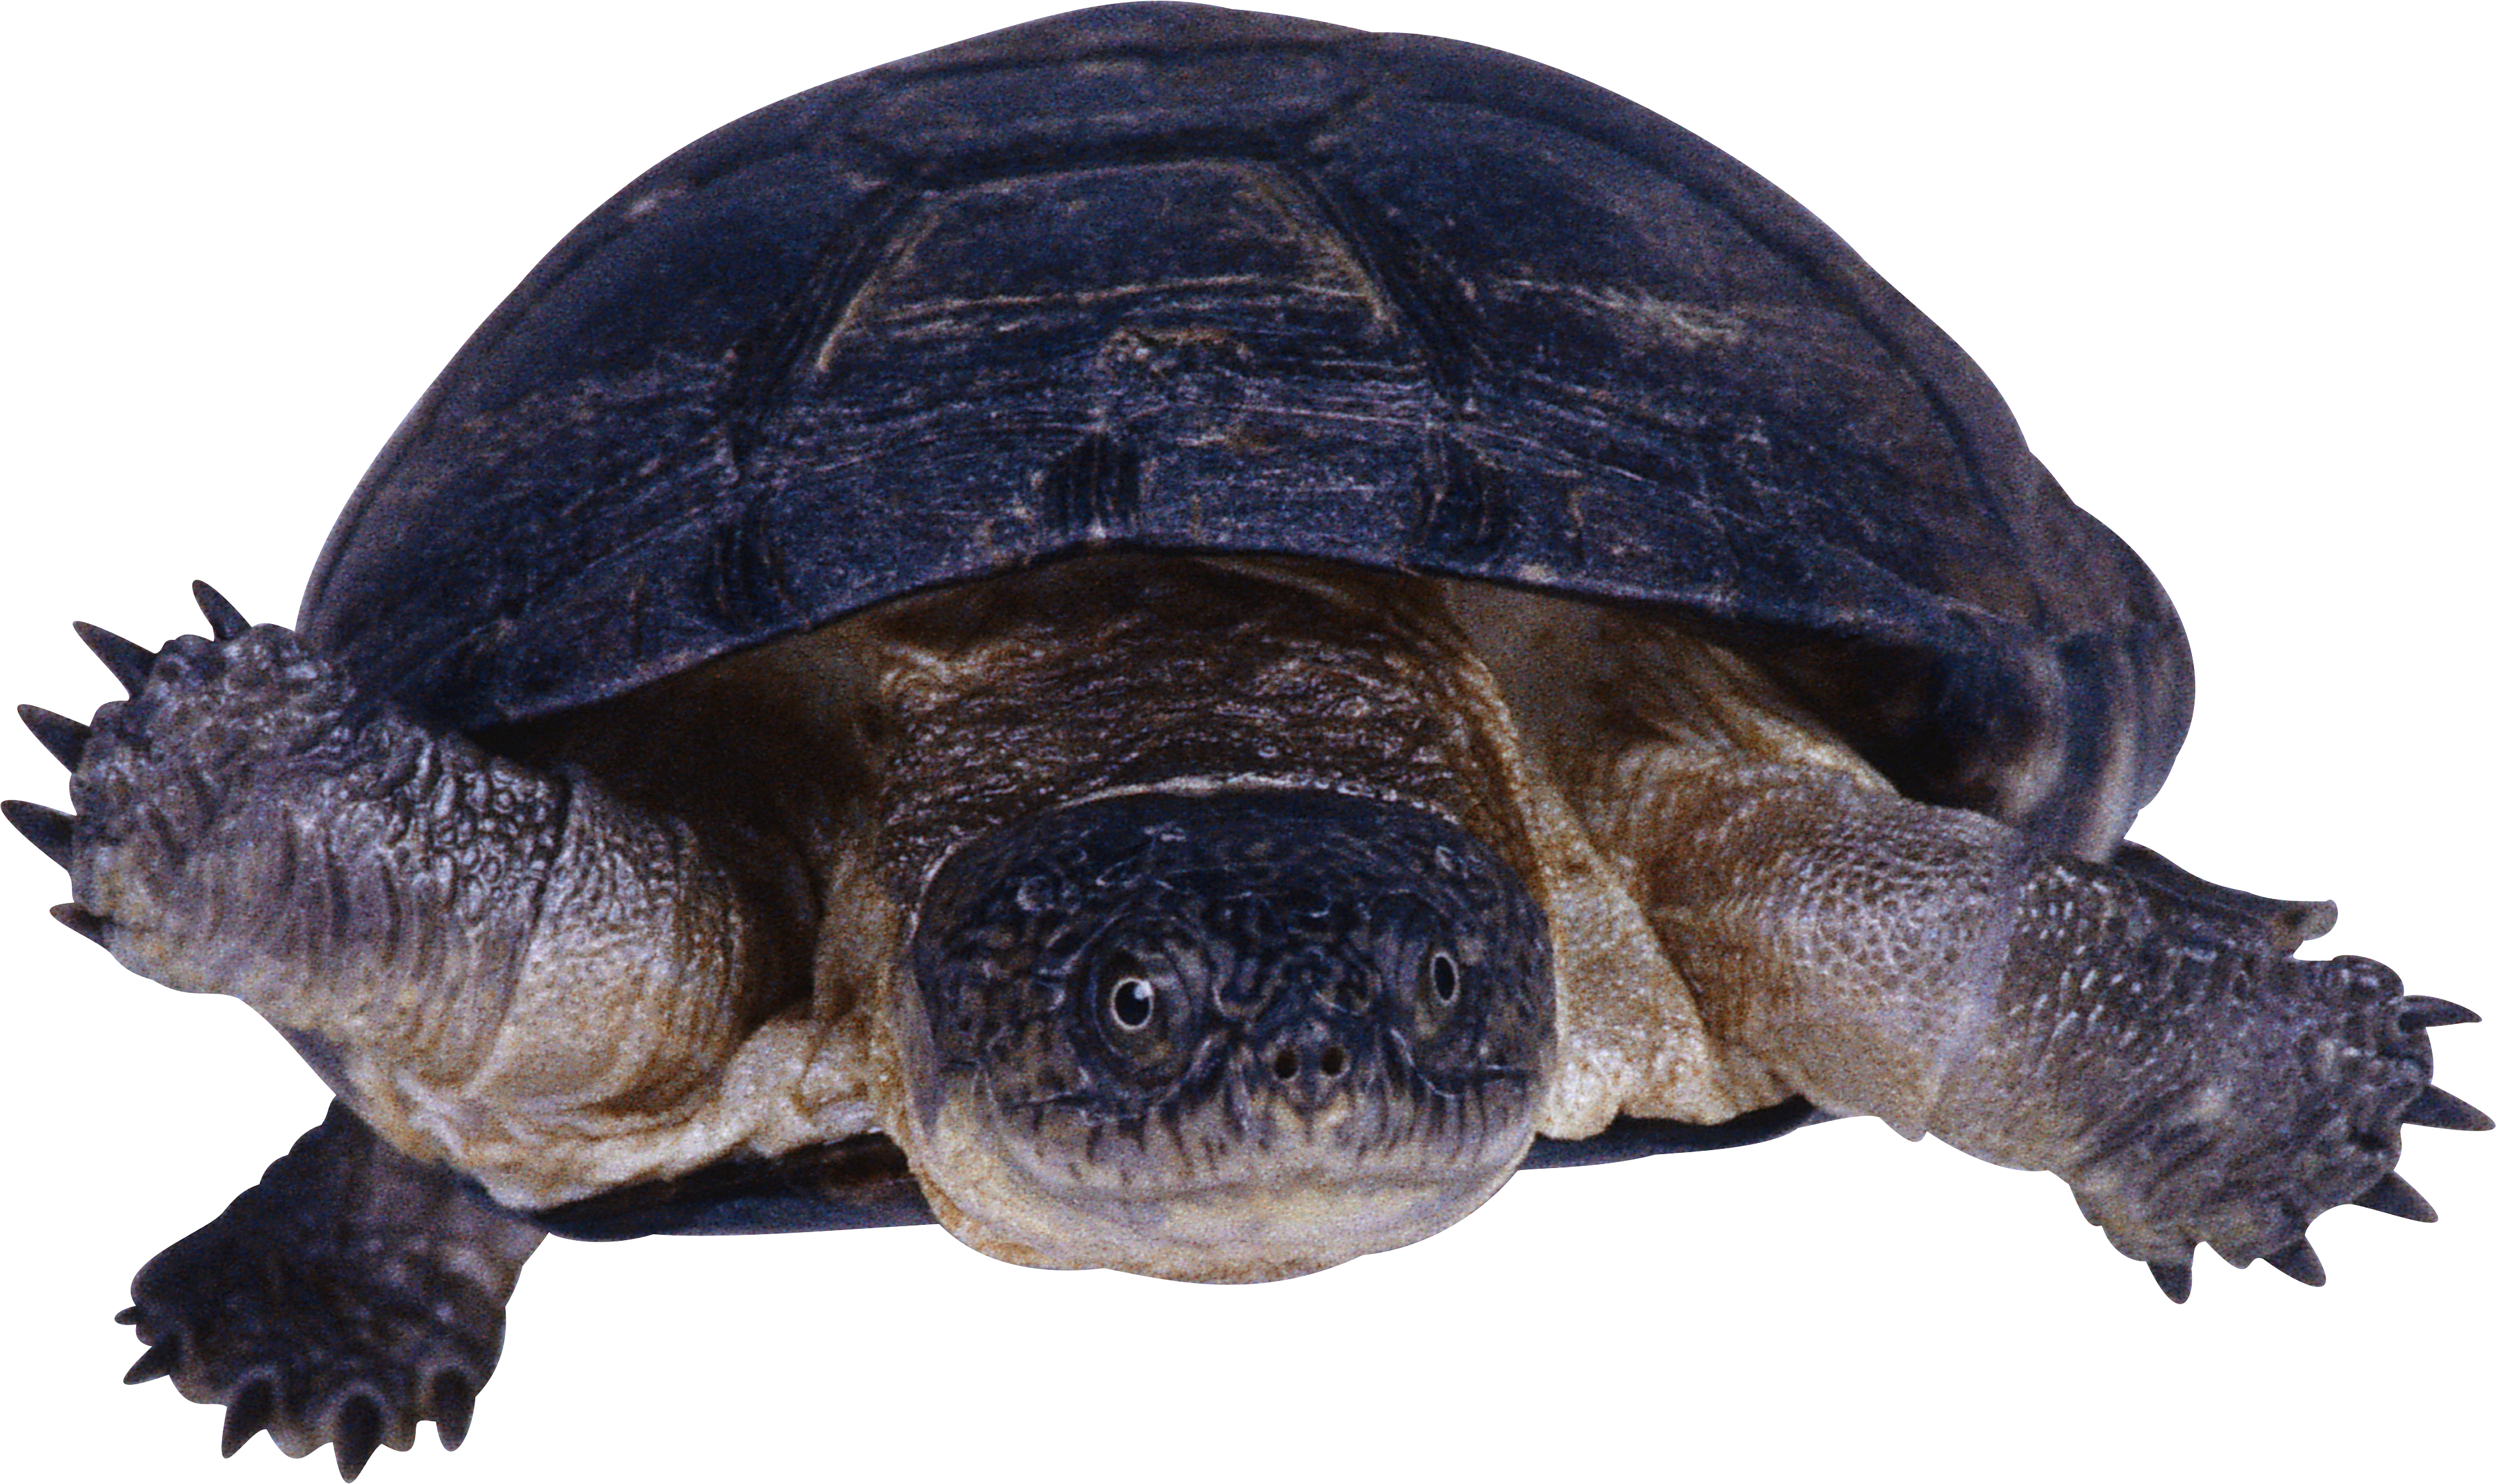 Clipart turtle snapping turtle. Png in high resolution